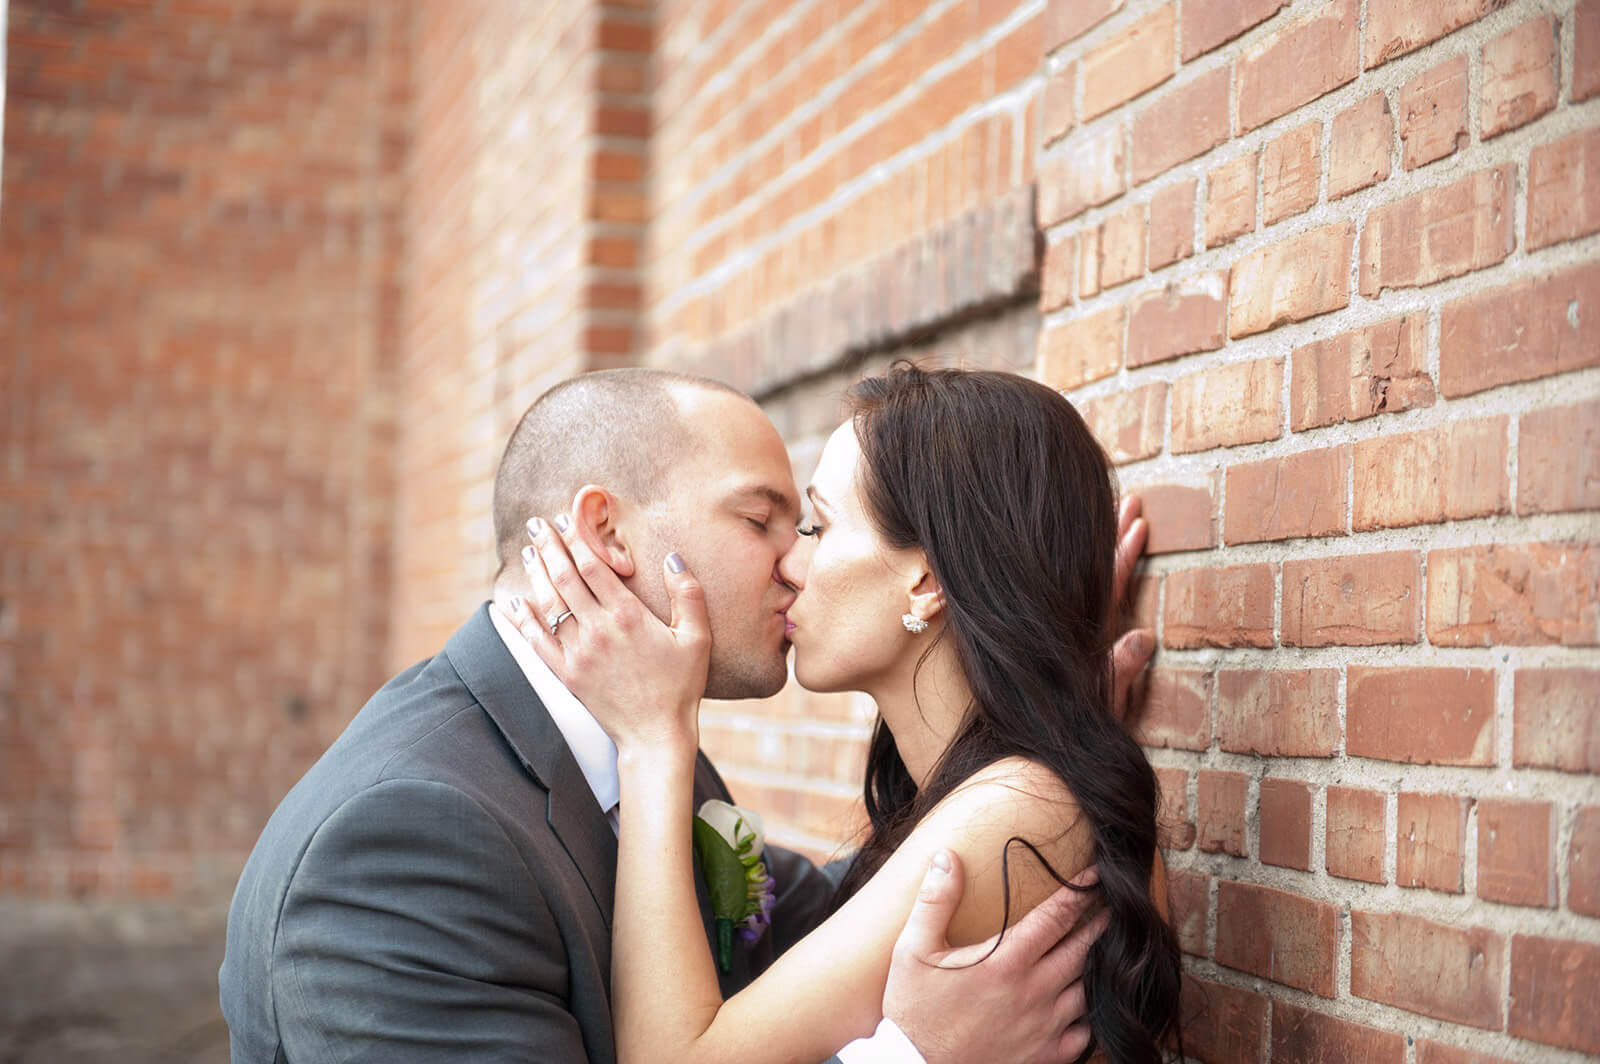 Regina Wedding Photographer - Andrew & Alicia - Brick Wall Kiss